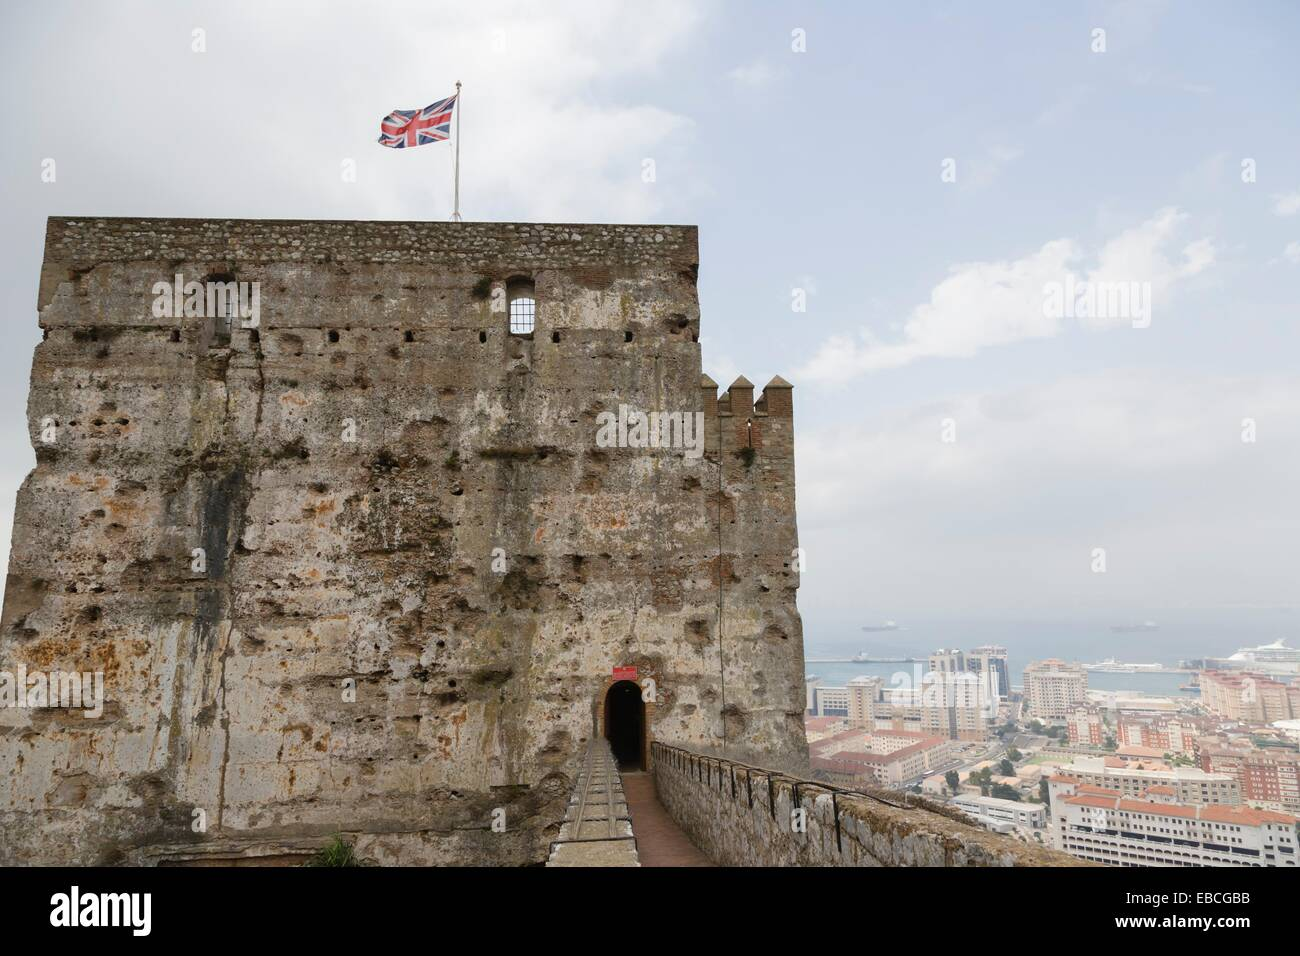 architecture bay body of water British building built structure castle city colony color image day Europe flag Flag - Stock Image